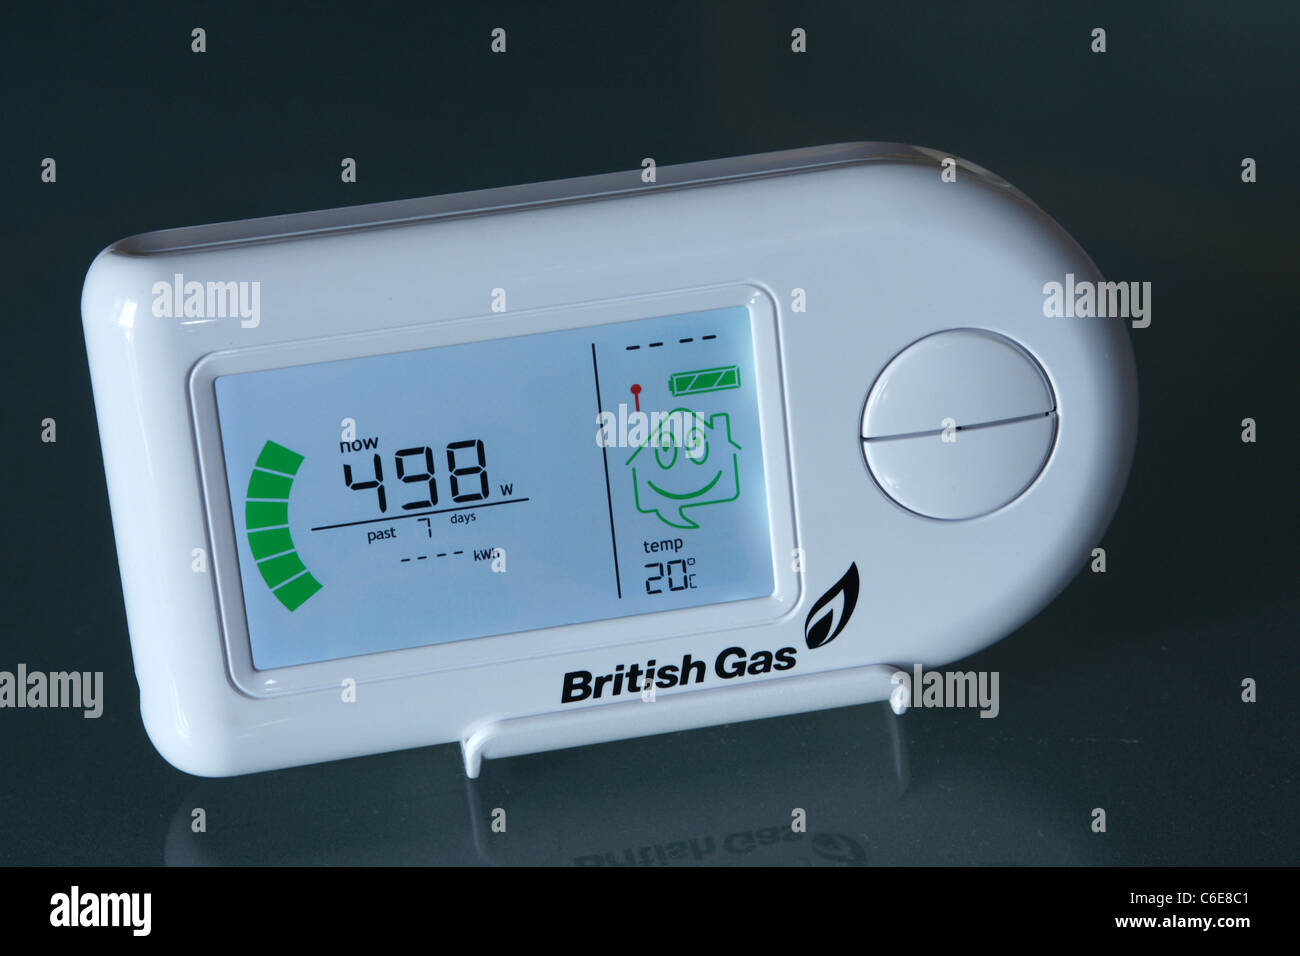 A British Gas Electricity Monitor - Stock Image